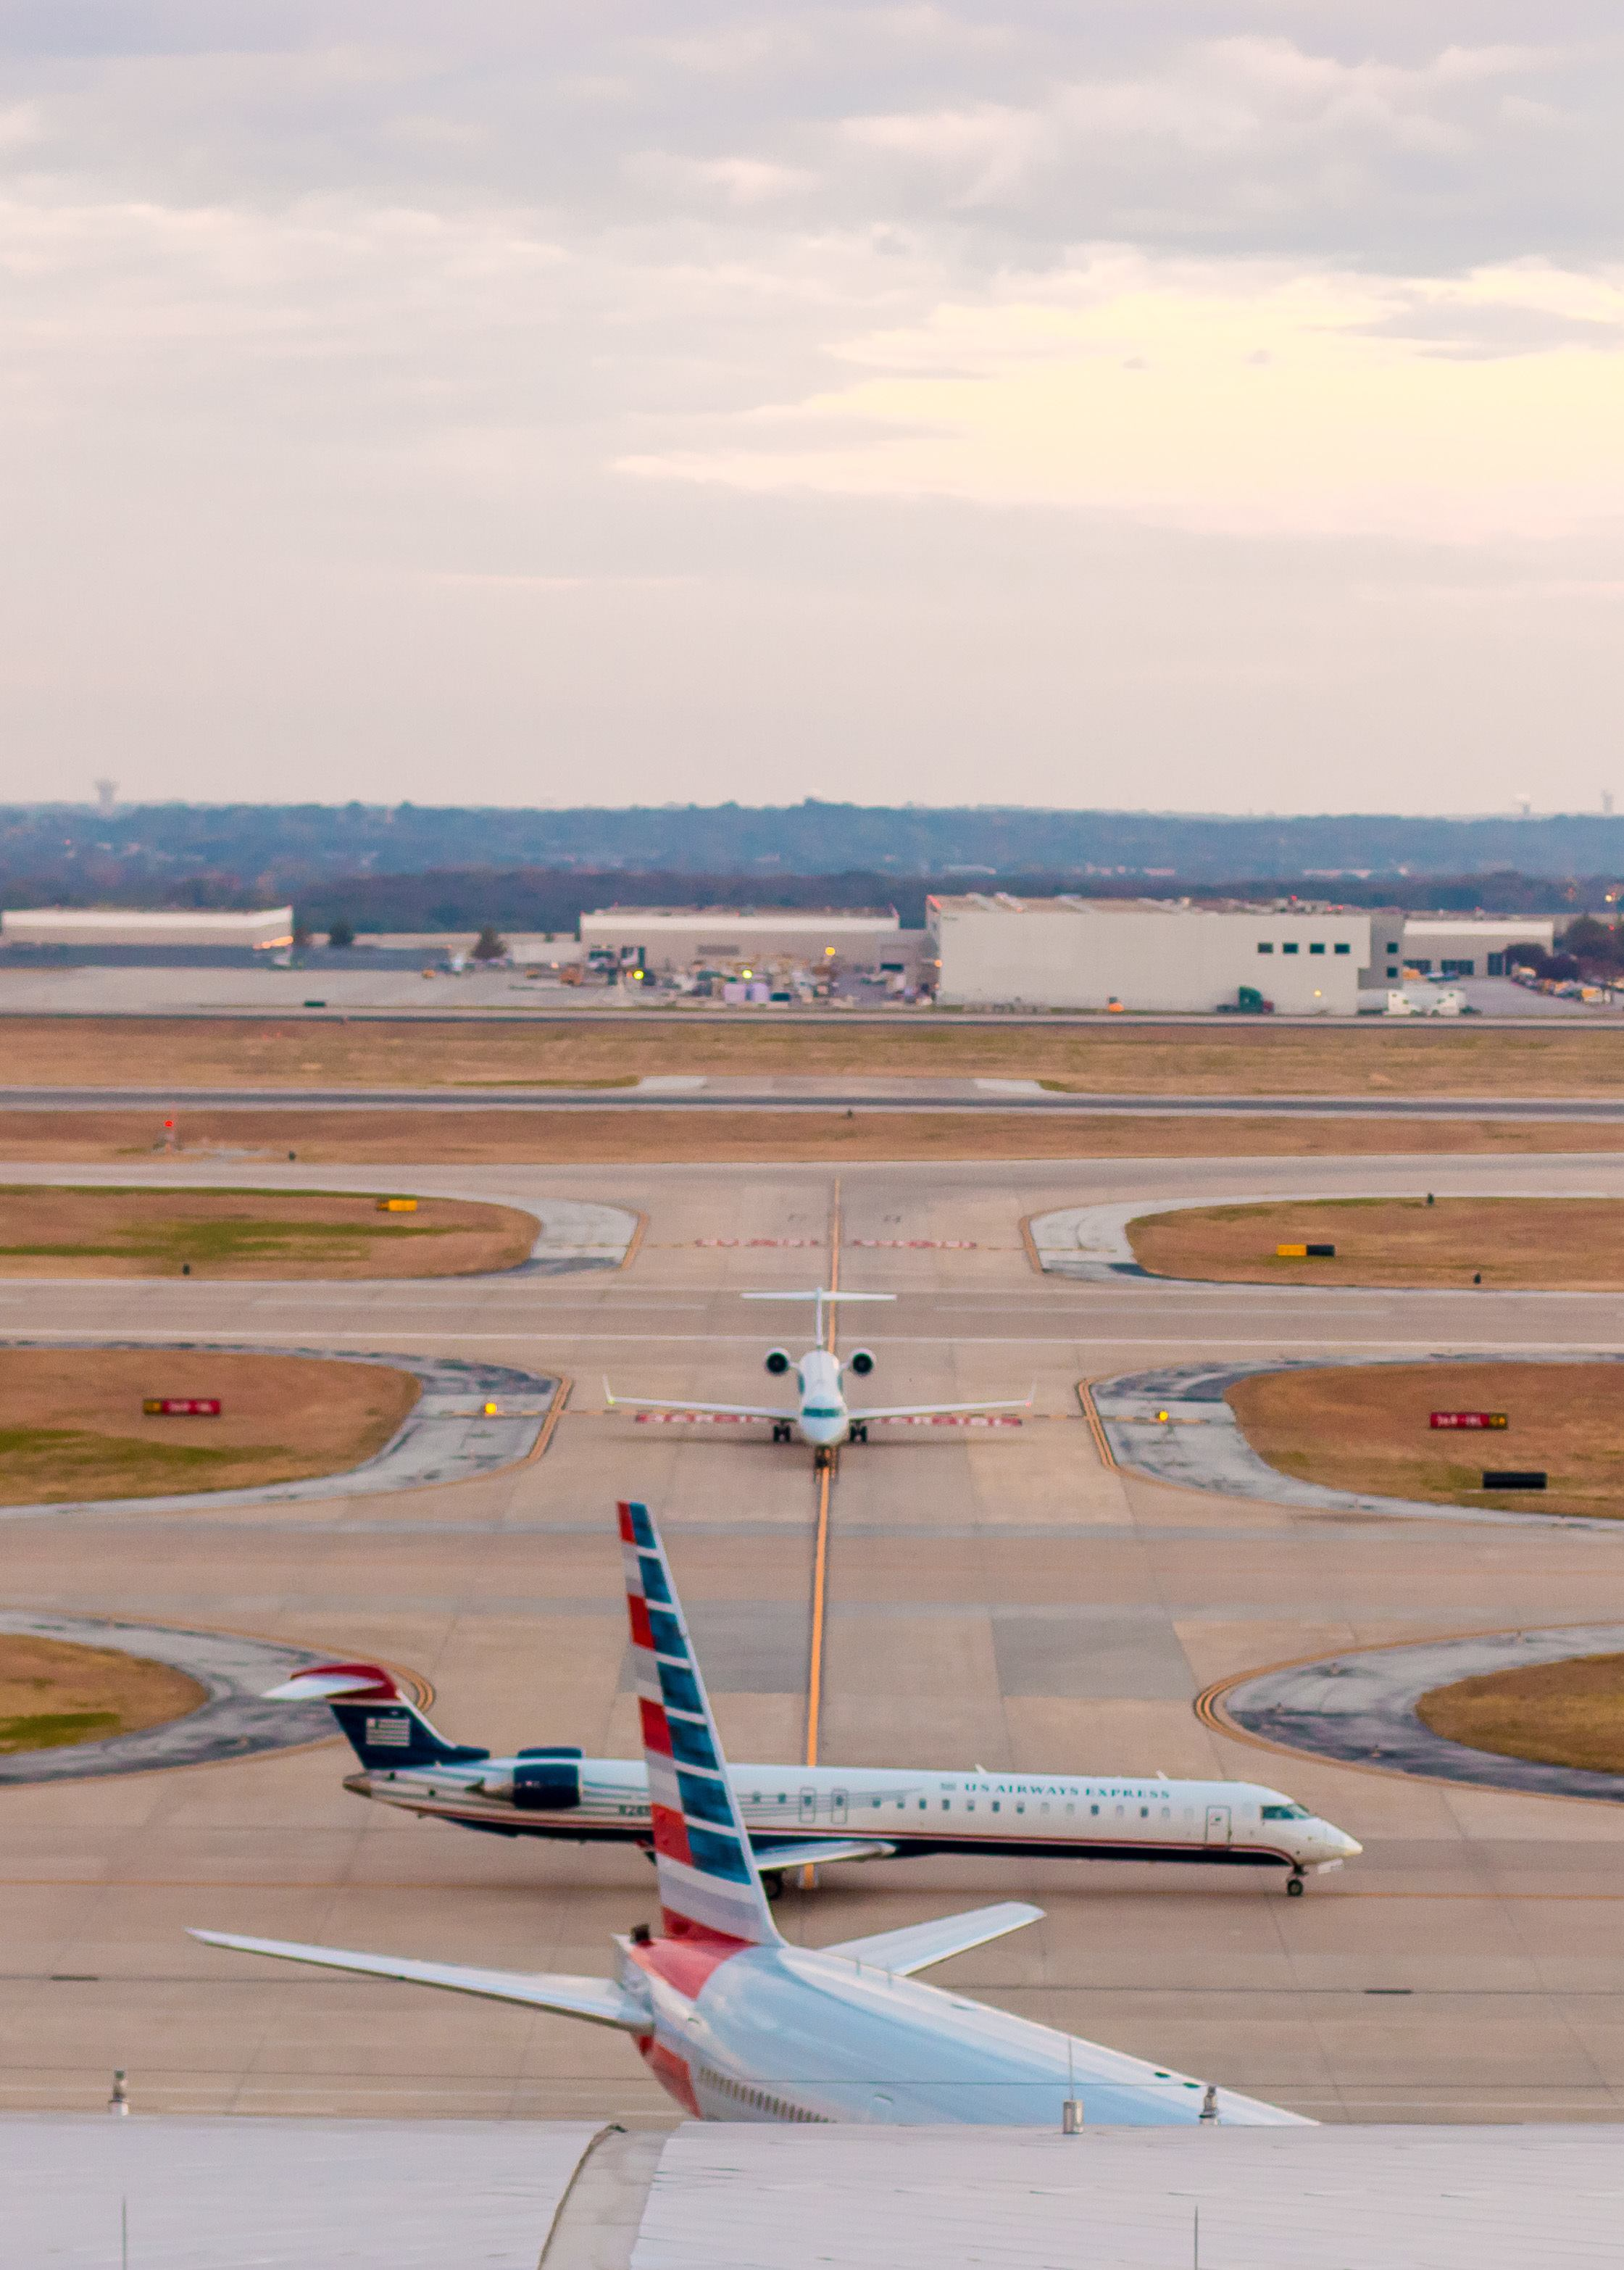 Planes as seen from a runway room at Grand Hyatt DFW, a great Dallas airport hotel.